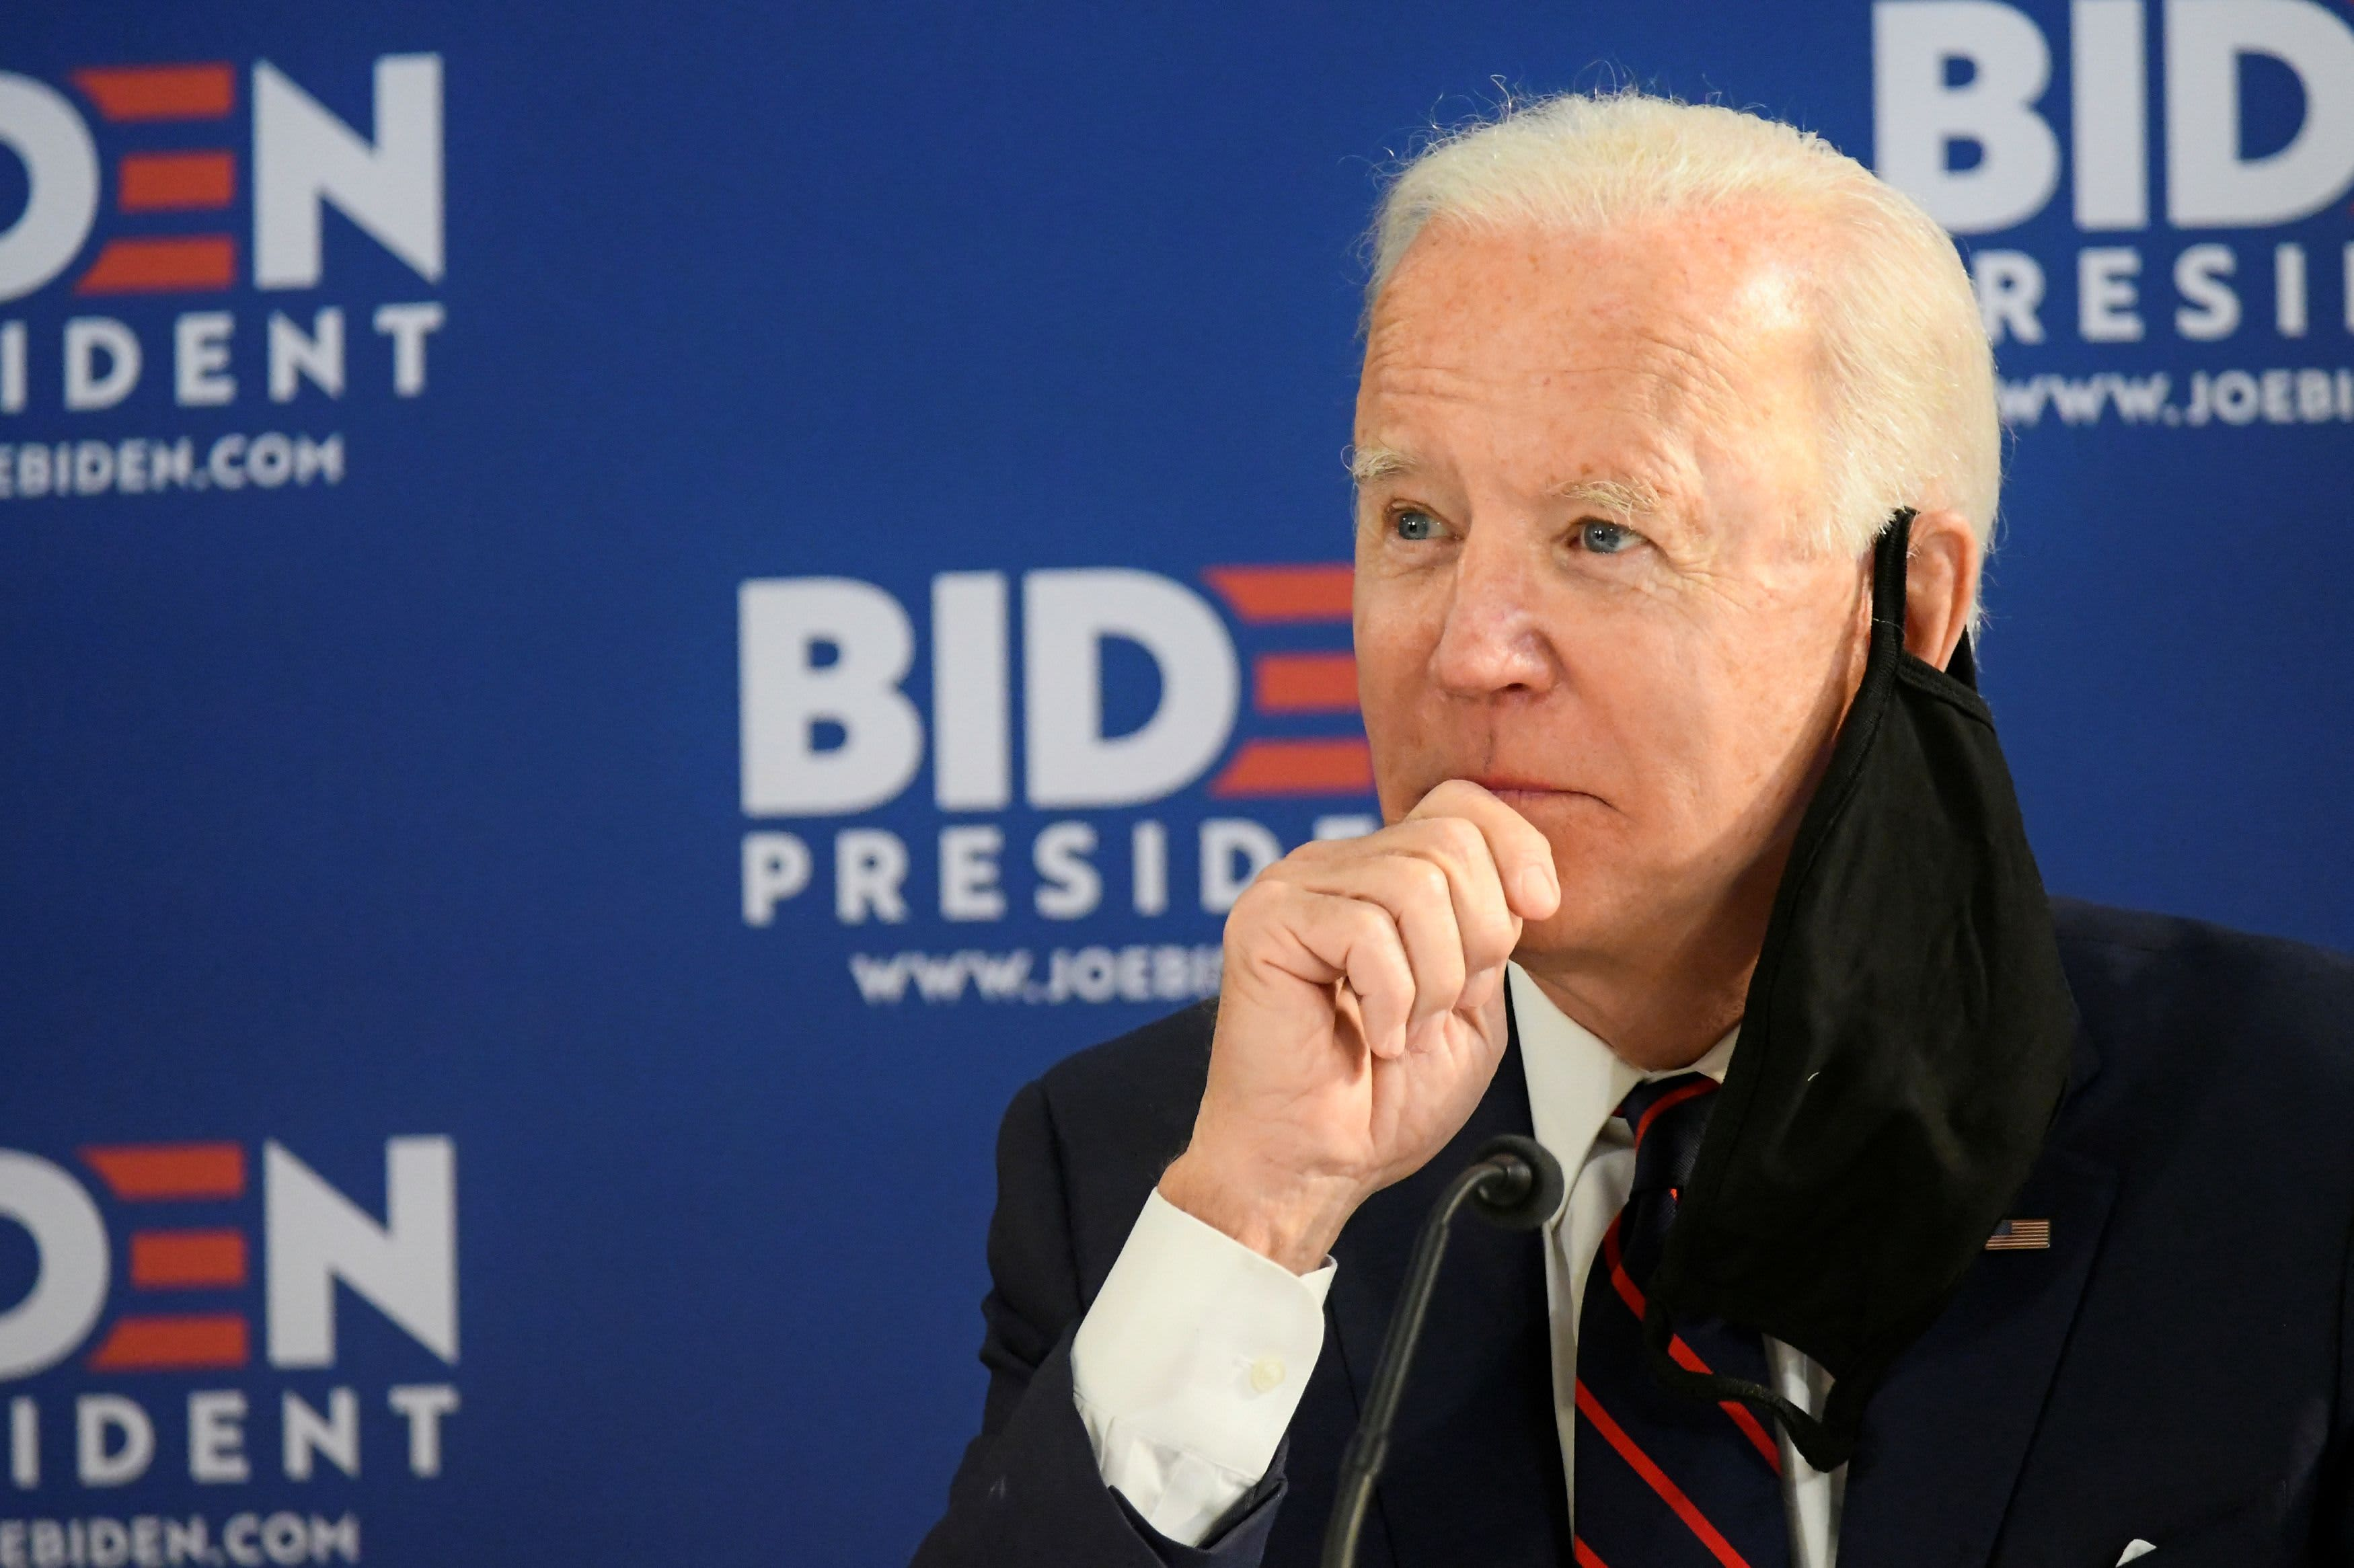 Biden leads Trump in six 2020 swing states, CNBC/Change Research ...